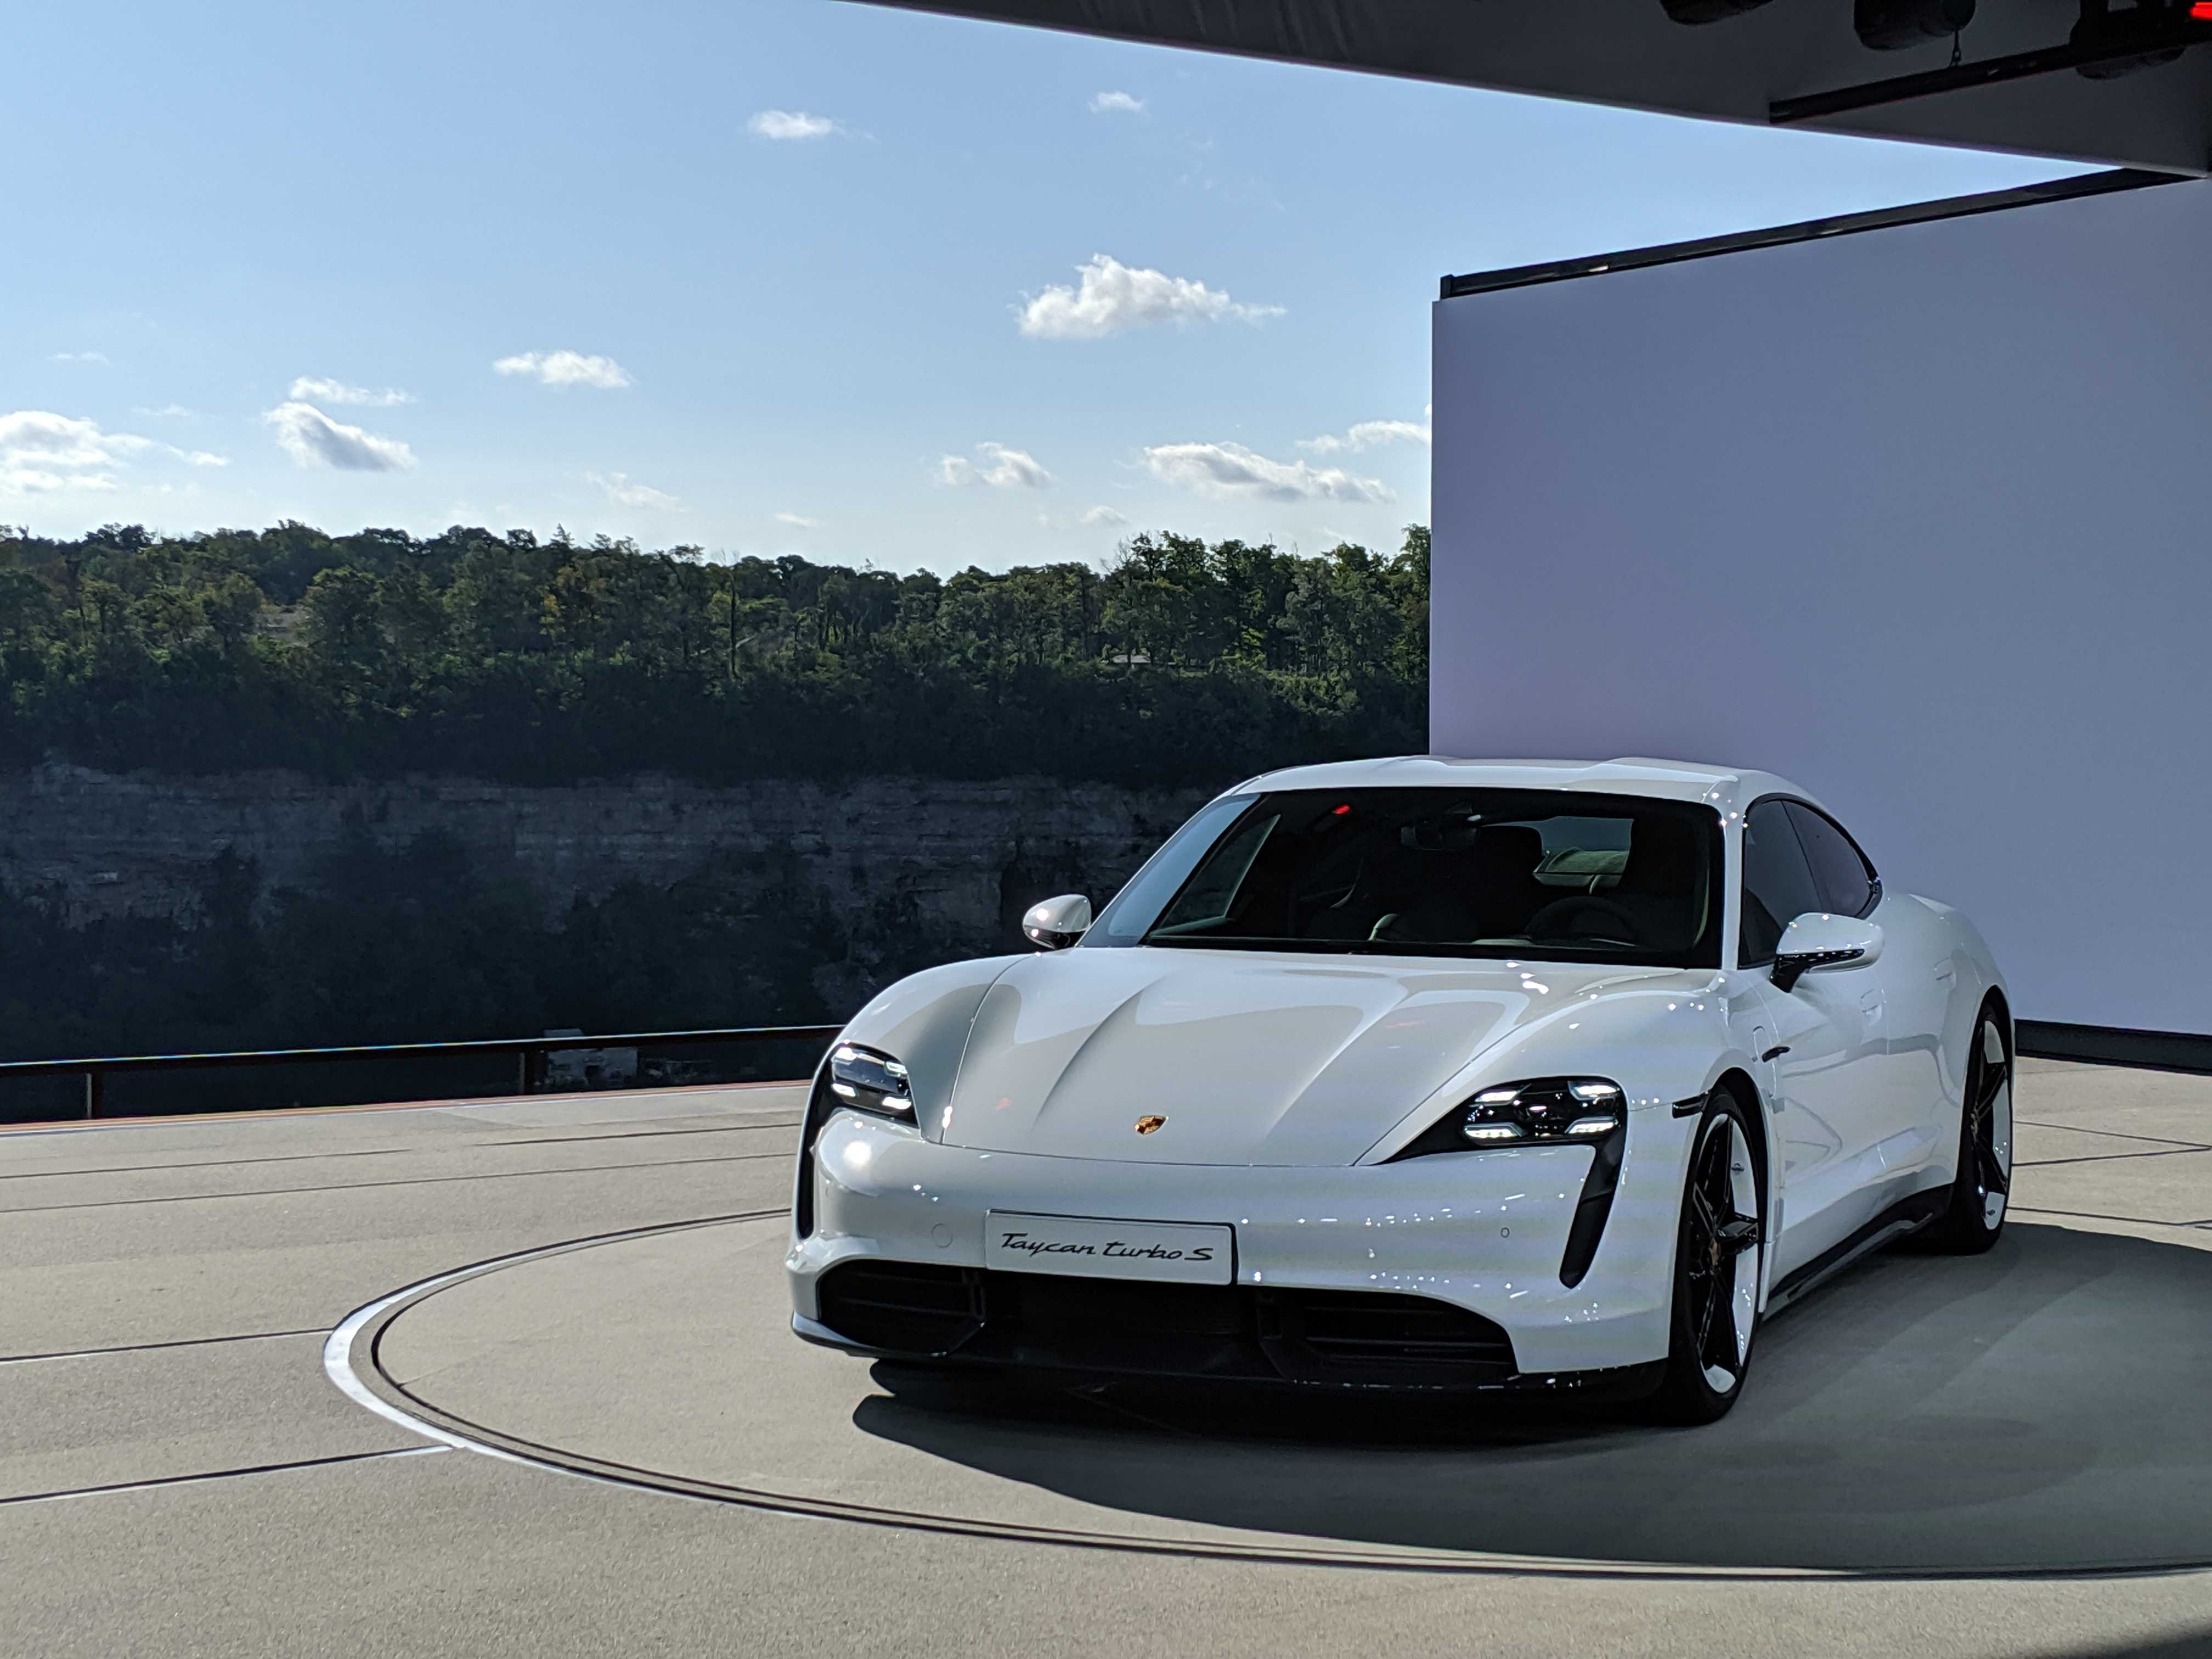 Here S Every Angle Of The Porsche Taycan Turbo S In Pictures Techcrunch